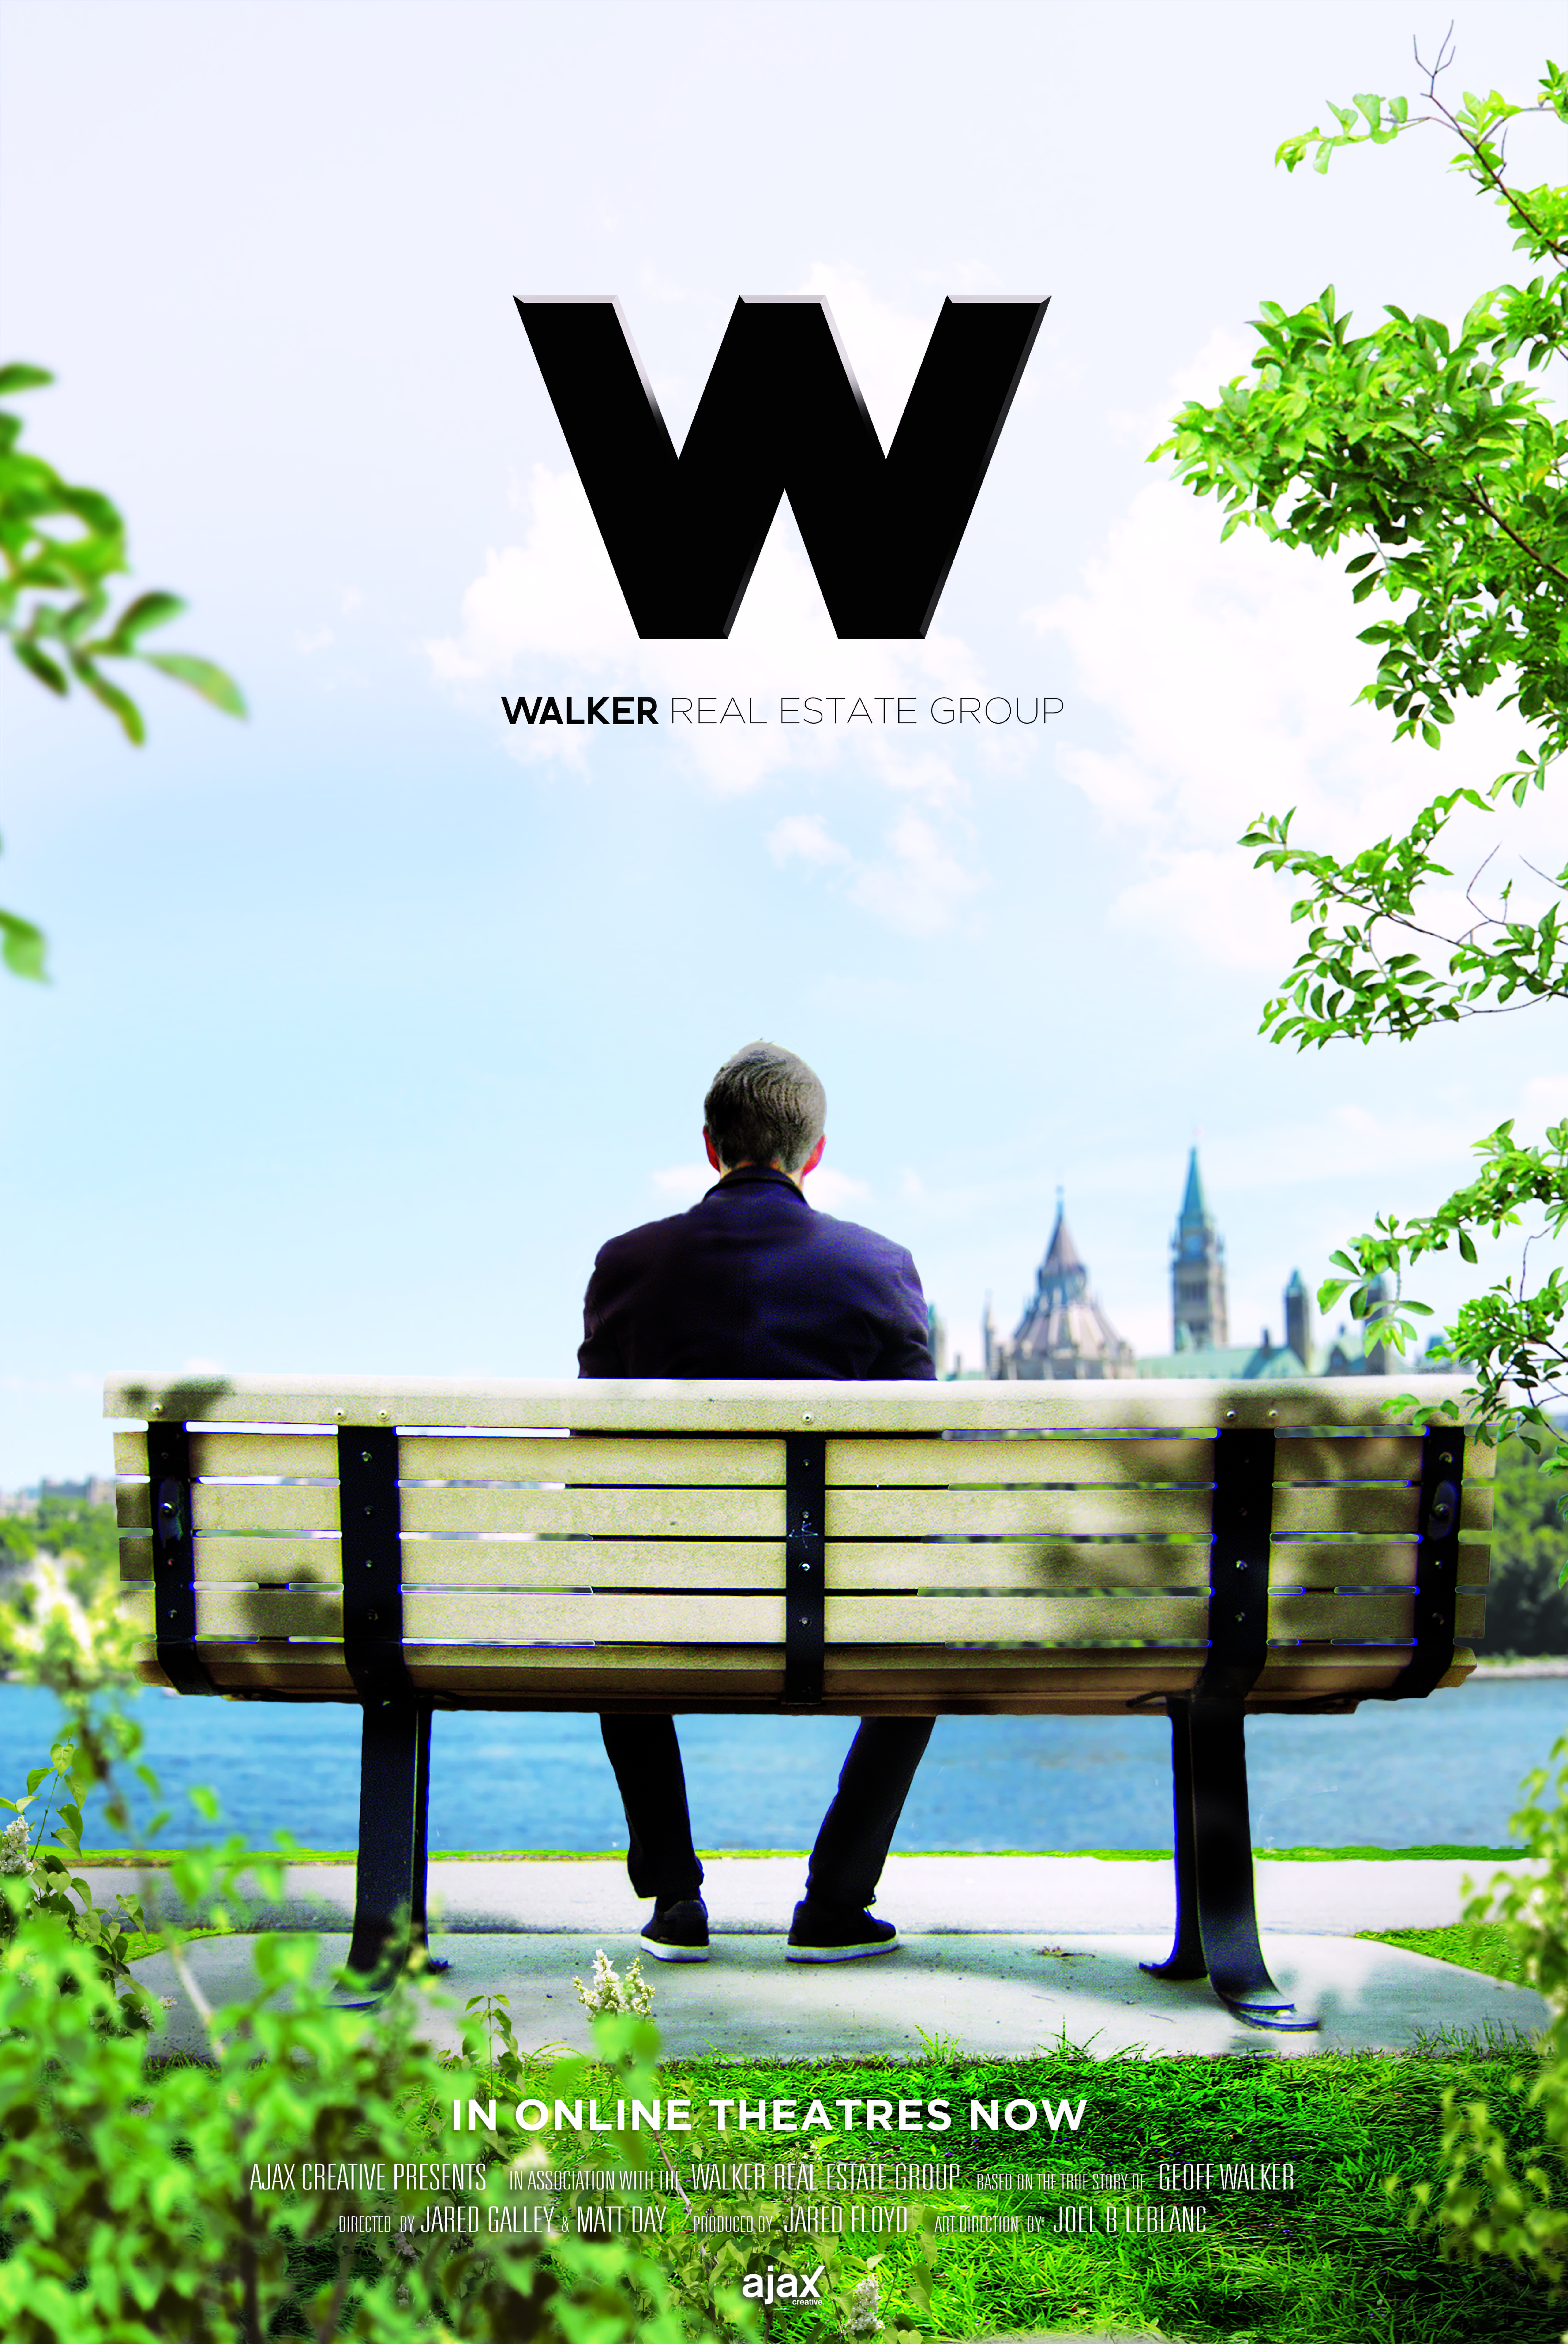 Movie Posters 4 (1)